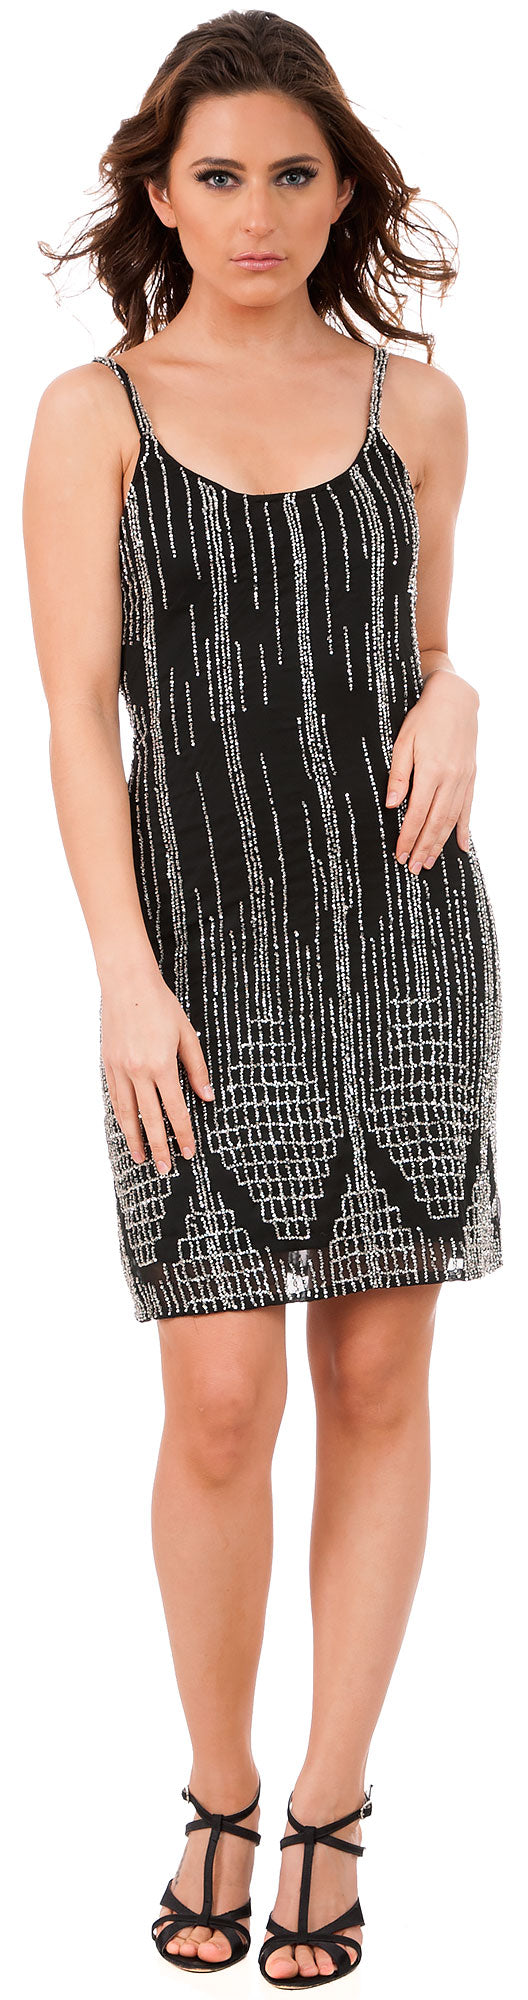 Image of Short Fitted Beaded Short Shift Homecoming Party Dress in Black/Silver